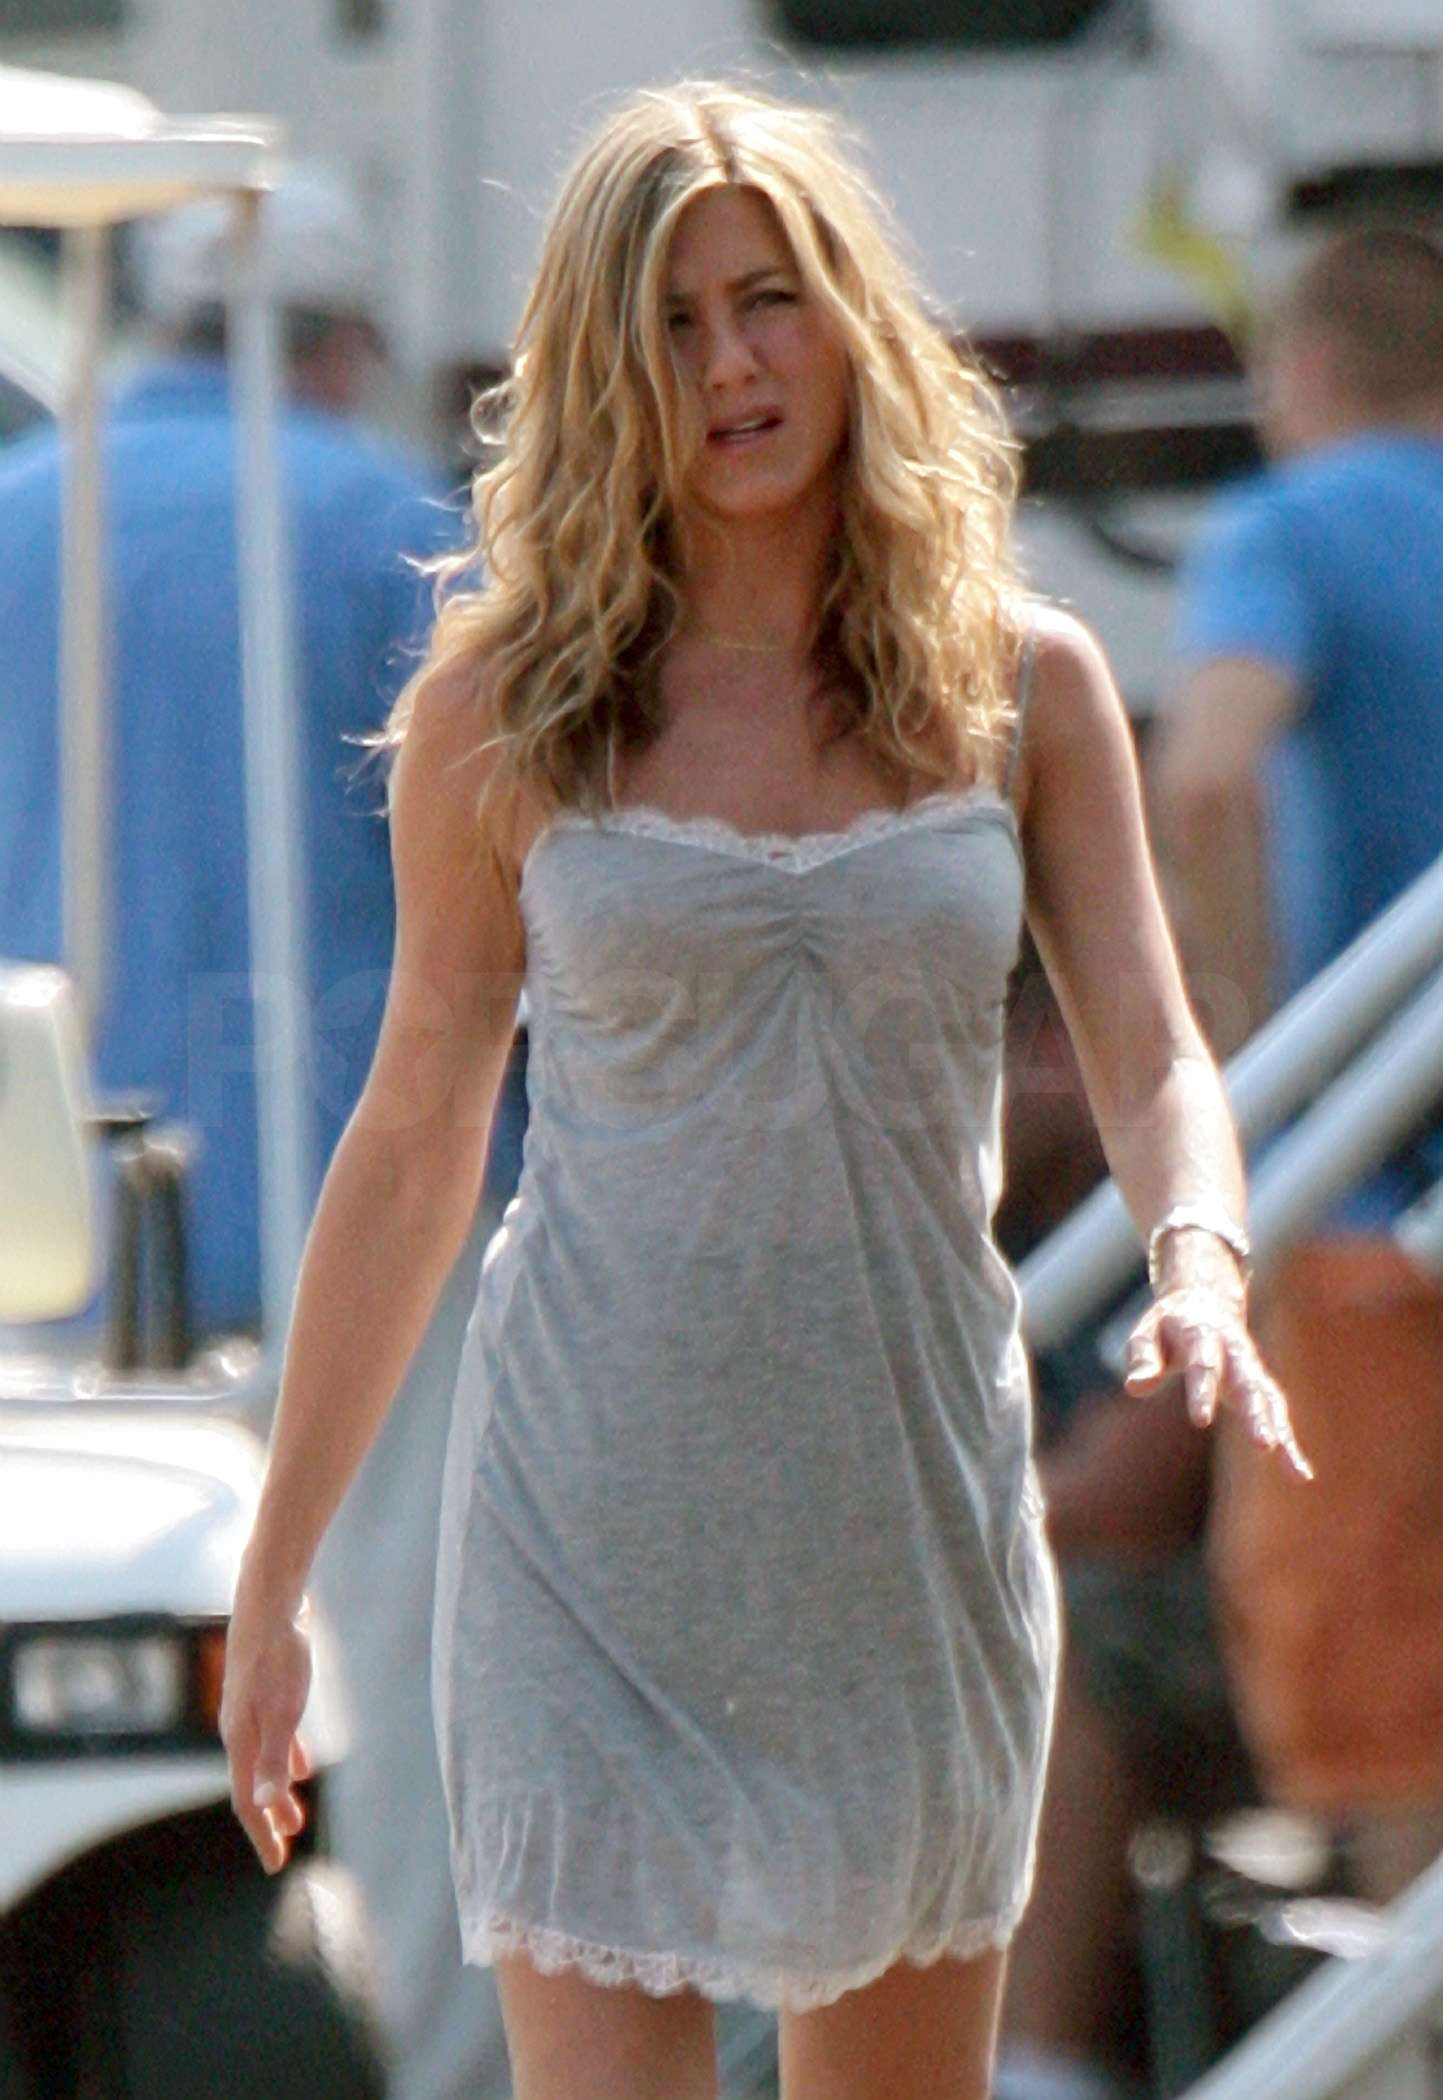 August 18, 2009: Jennifer Aniston on the set of the film 'The Bounty' currently filming at Monmouth Park Racetrack in Oceanport, New Jersey. Credit: INFphoto.com Ref.: infusny-77/93|sp|EXCLUSIVE TO INF. ALL-ROUNDER.